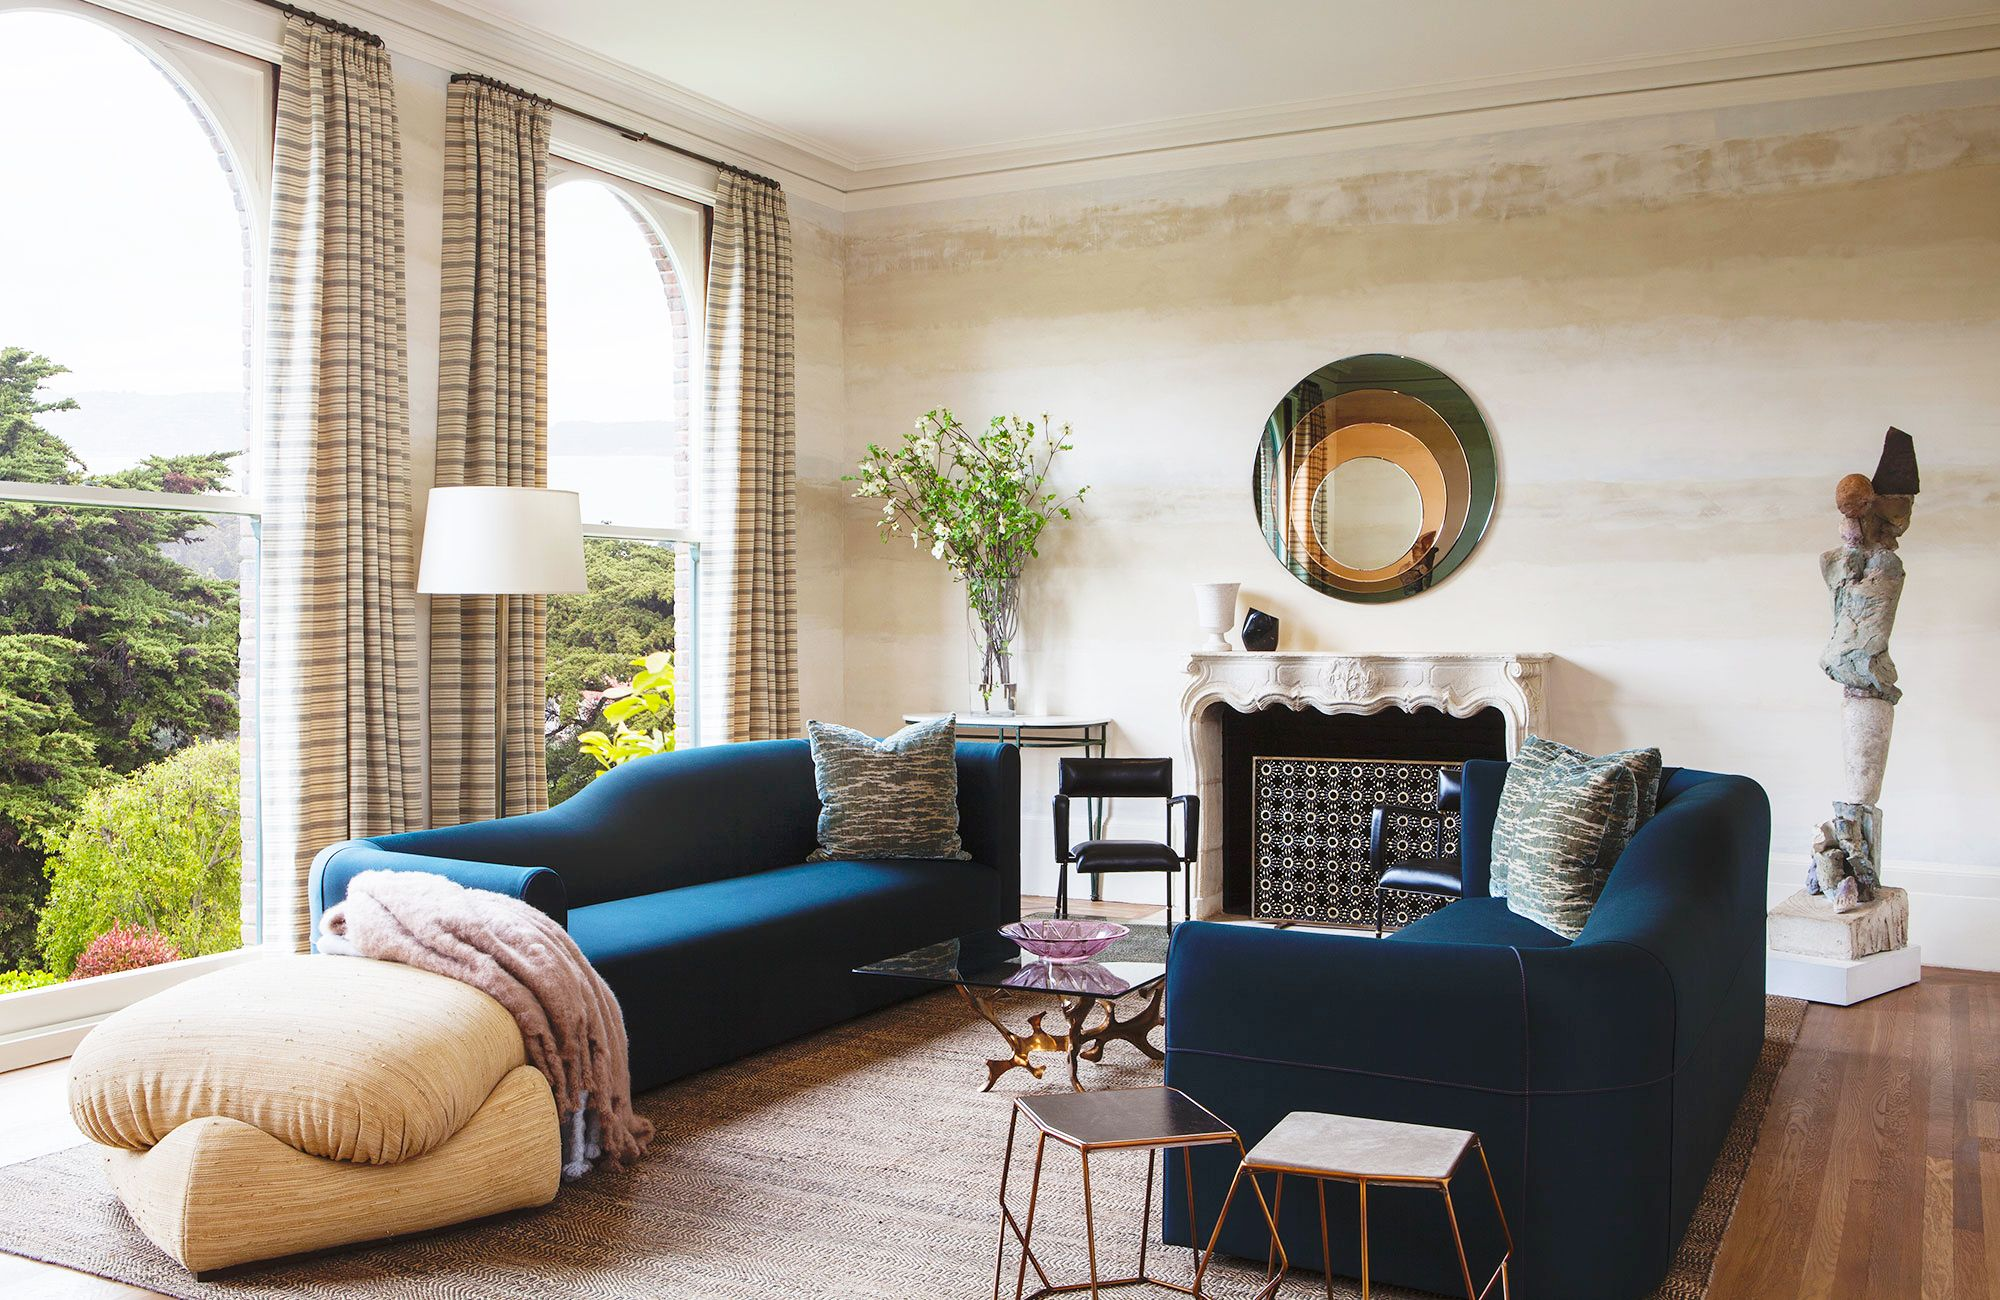 Requirements for Home Decoration and Home Textile Products on the European market